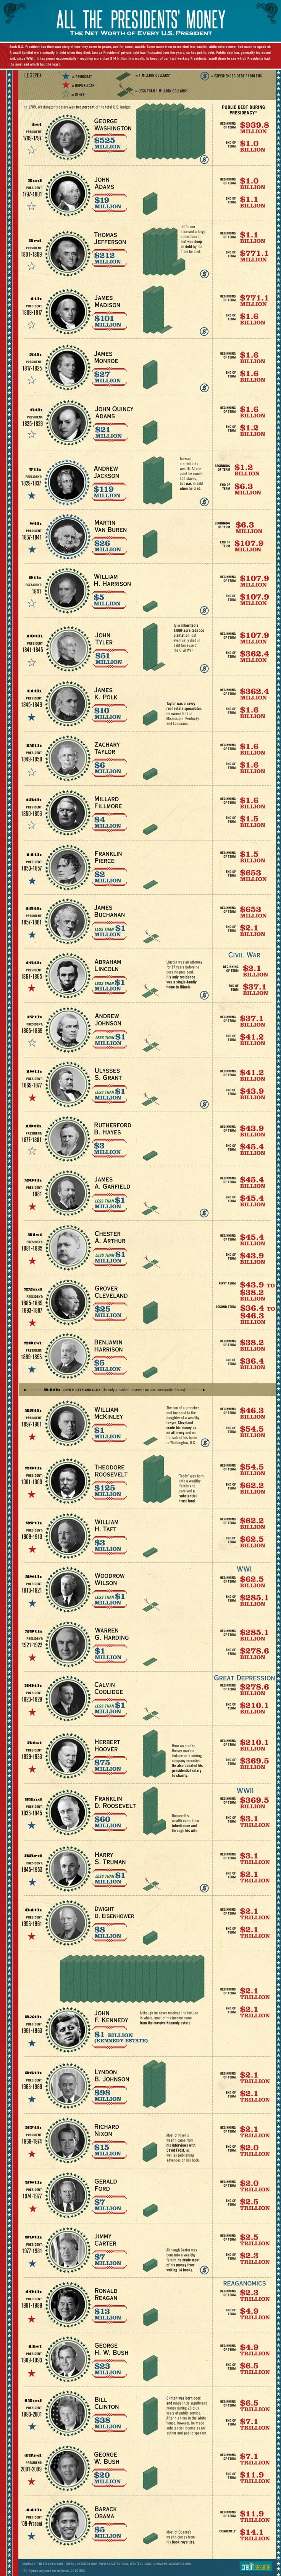 All The Presidents' Money: The Net Worth of Every U.S. President Infographic